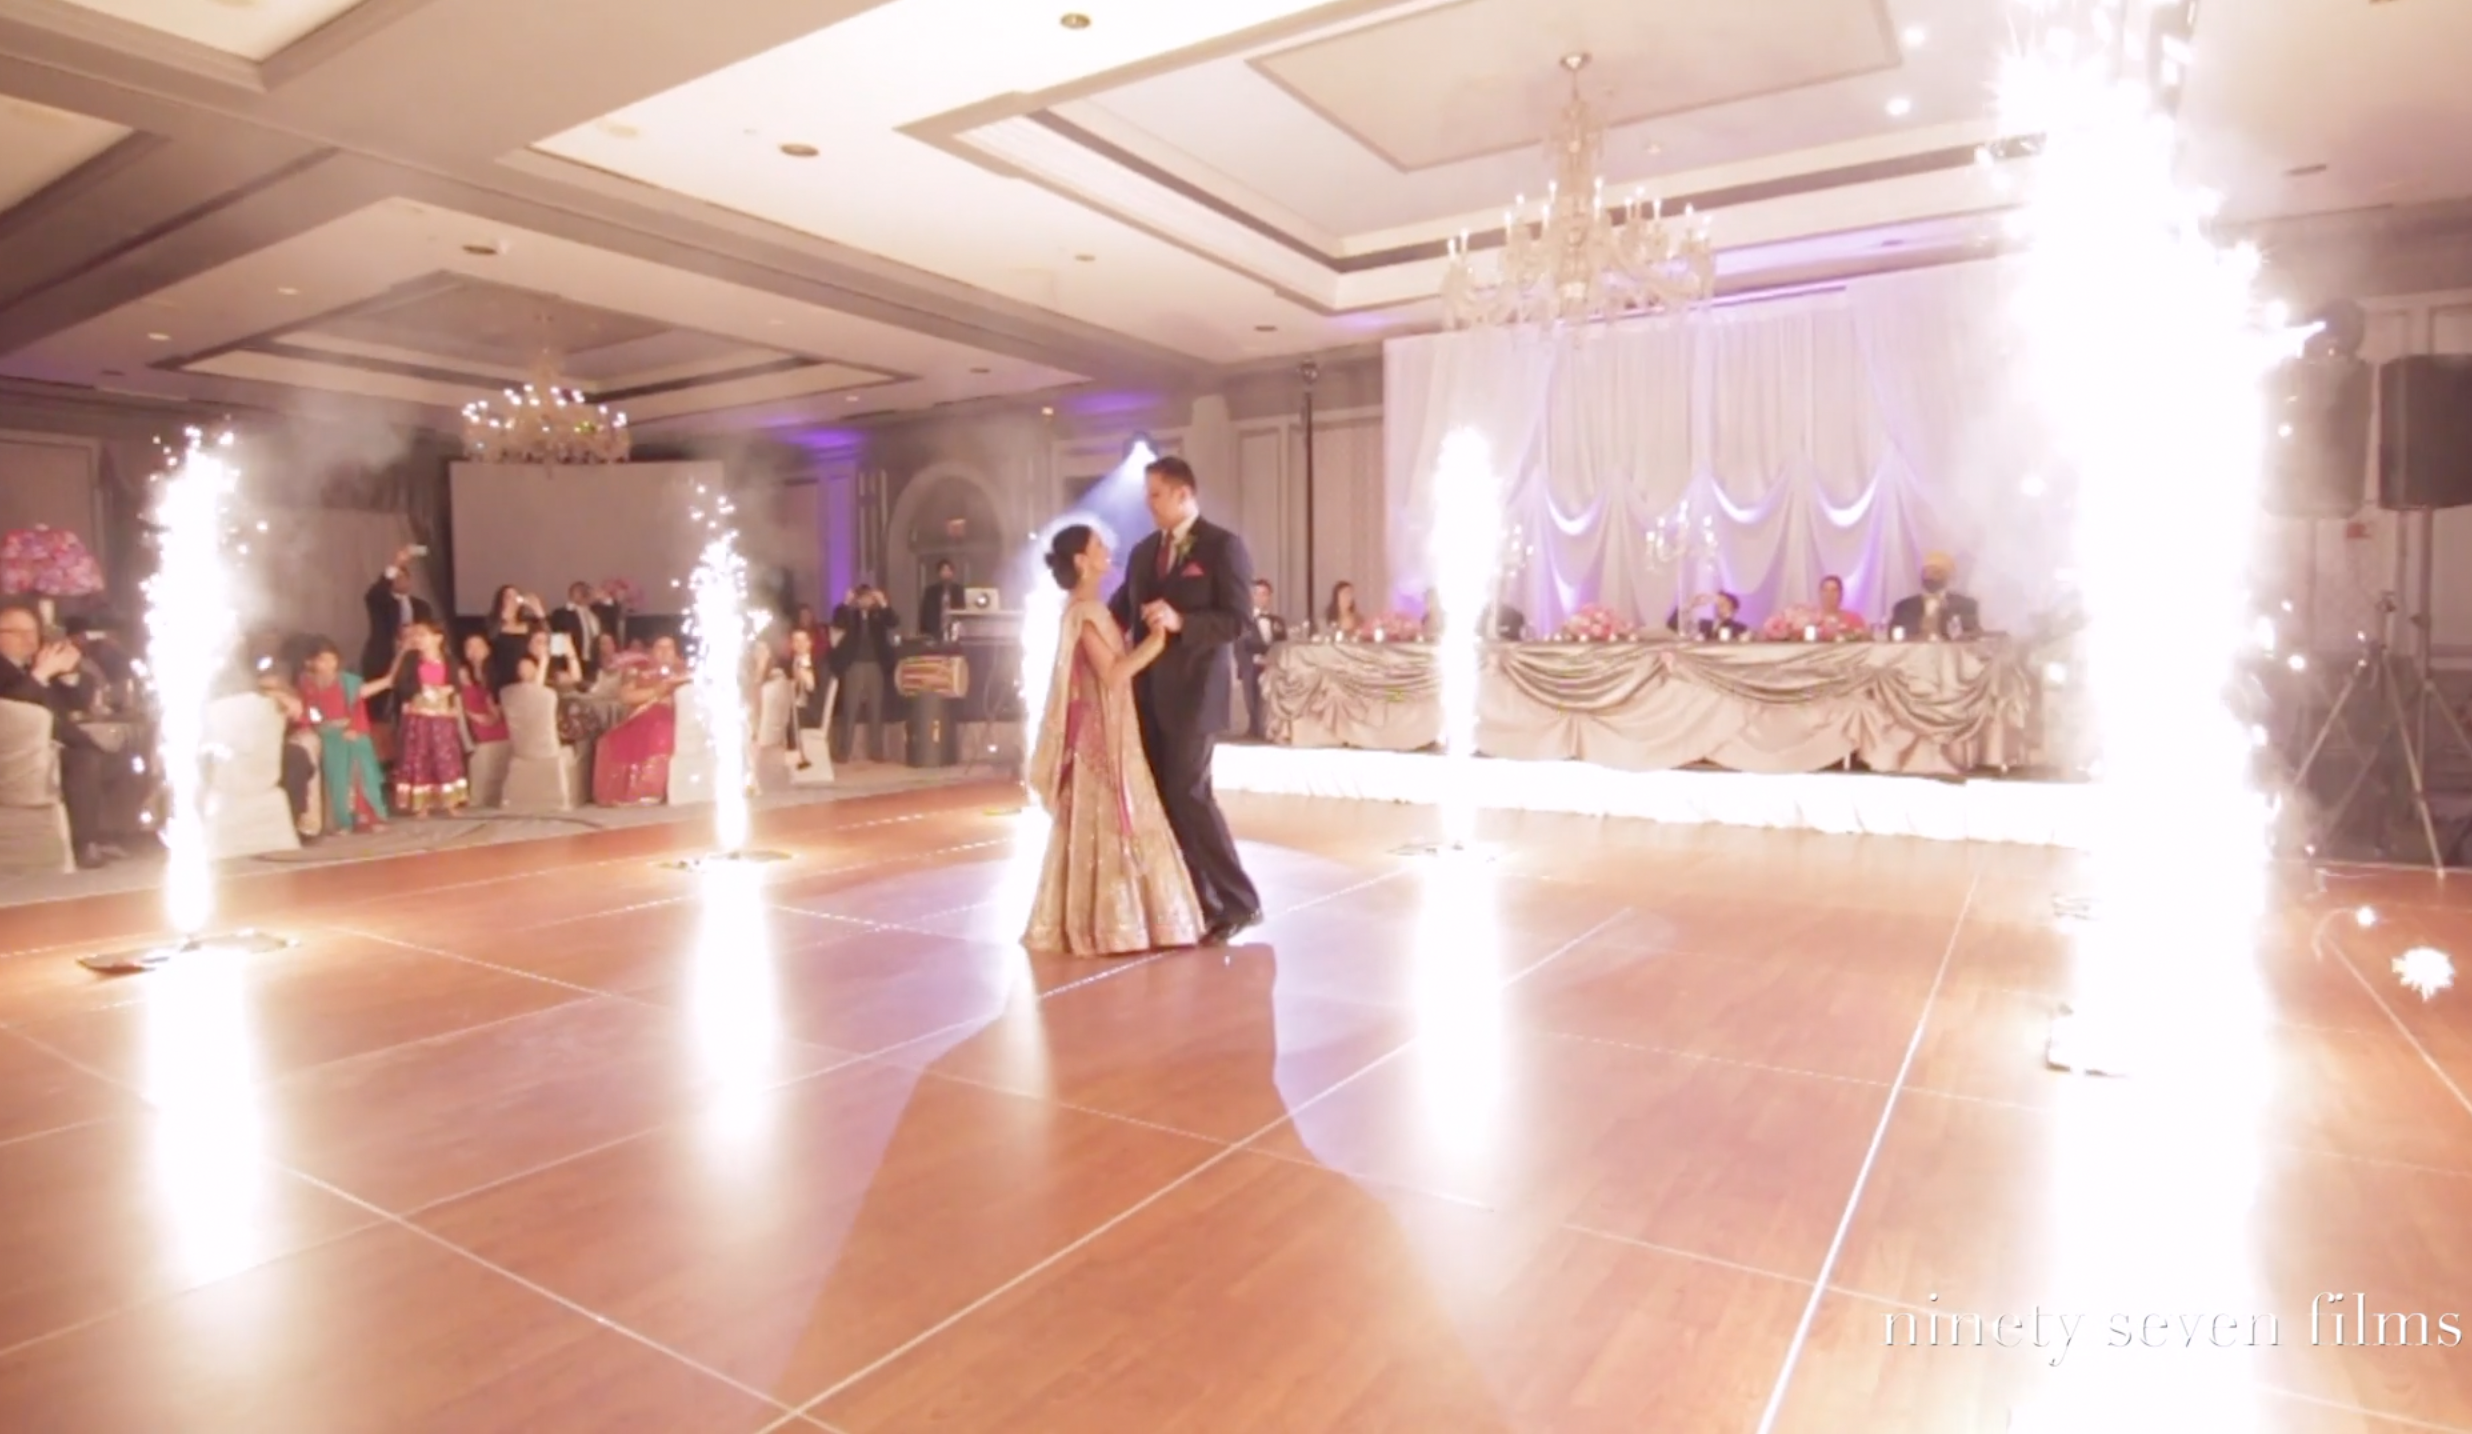 The Dance Floor Sparklers Are Epic In This Wedding Video Dance